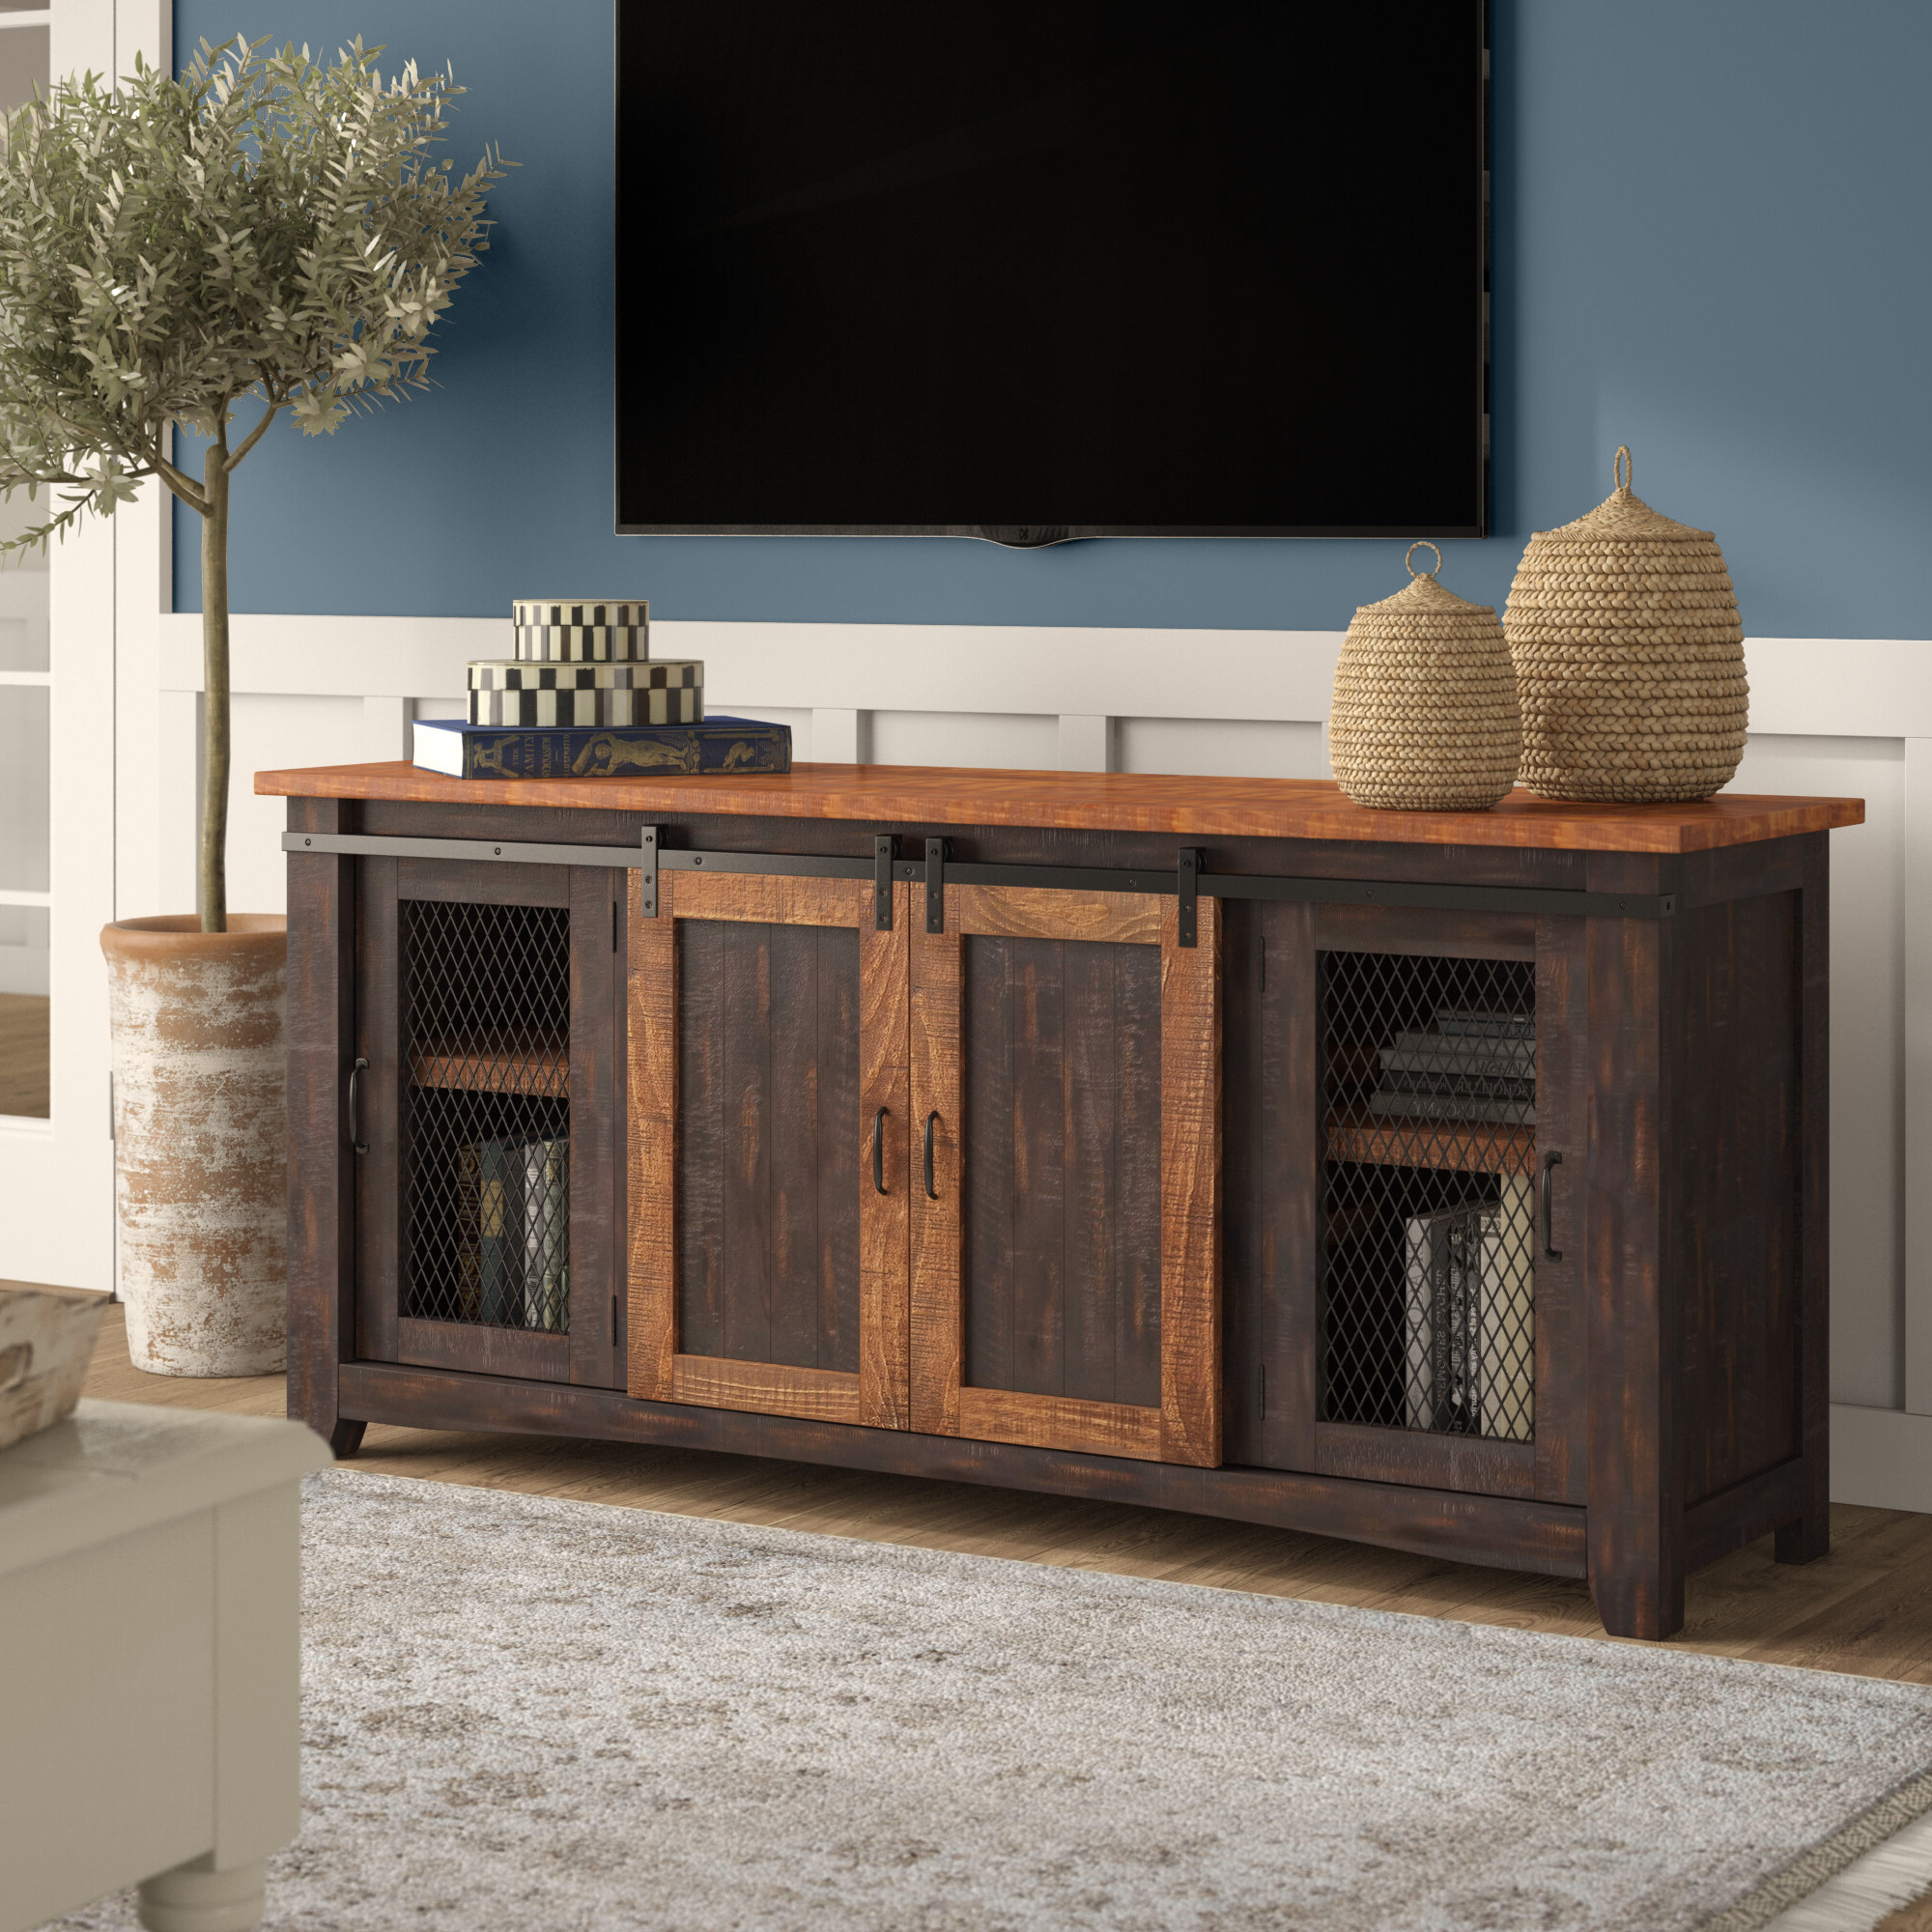 "Gracie Oaks Belen Tv Stand For Tvs Up To 70"" Throughout 2020 Parmelee Tv Stands For Tvs Up To 65"" (Gallery 17 of 20)"